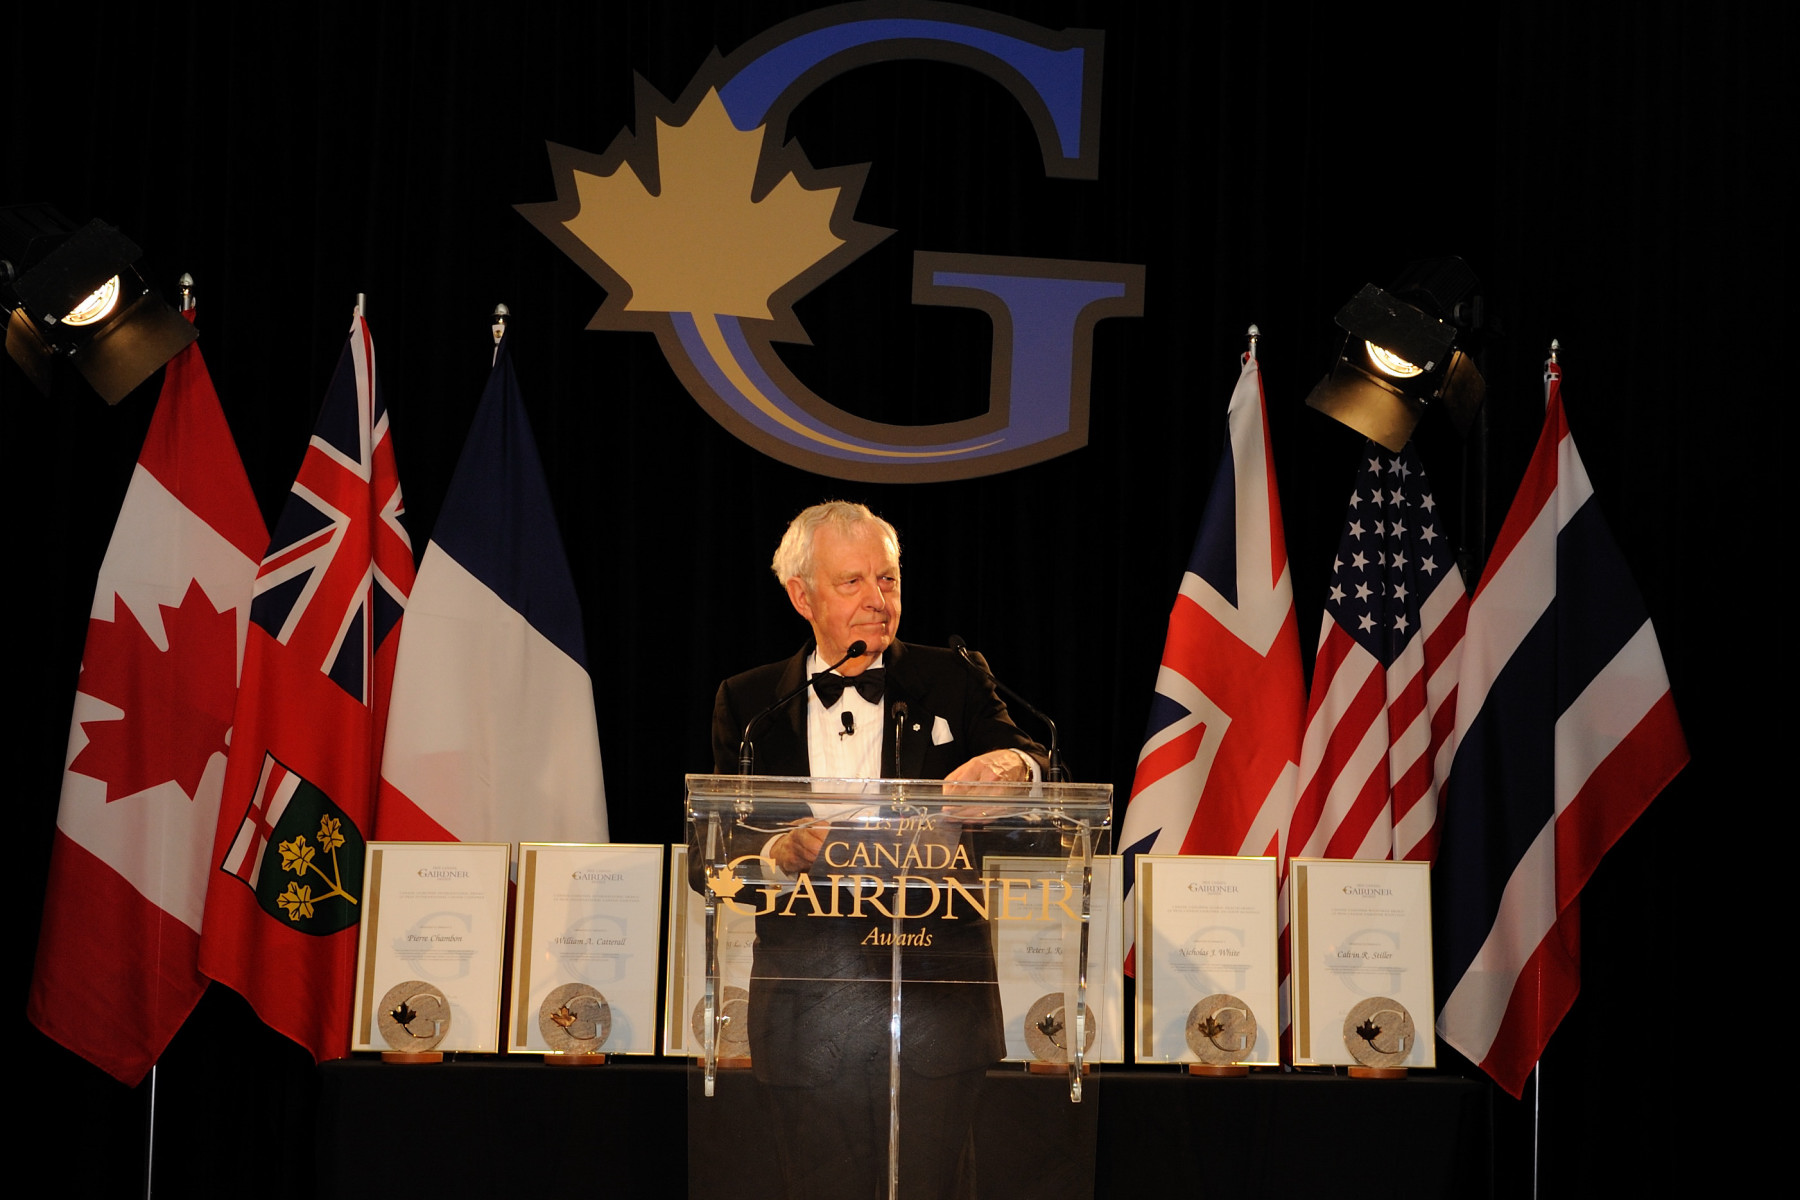 His Excellency the Right Honourable David Johnston, Governor General of Canada, attended the Gairdner Foundation Annual Awards Dinner in Toronto on October 28, 2010. The evening was hosted by Dr. John Dirks, President and Scientific Director of the Gairdner Foundation.